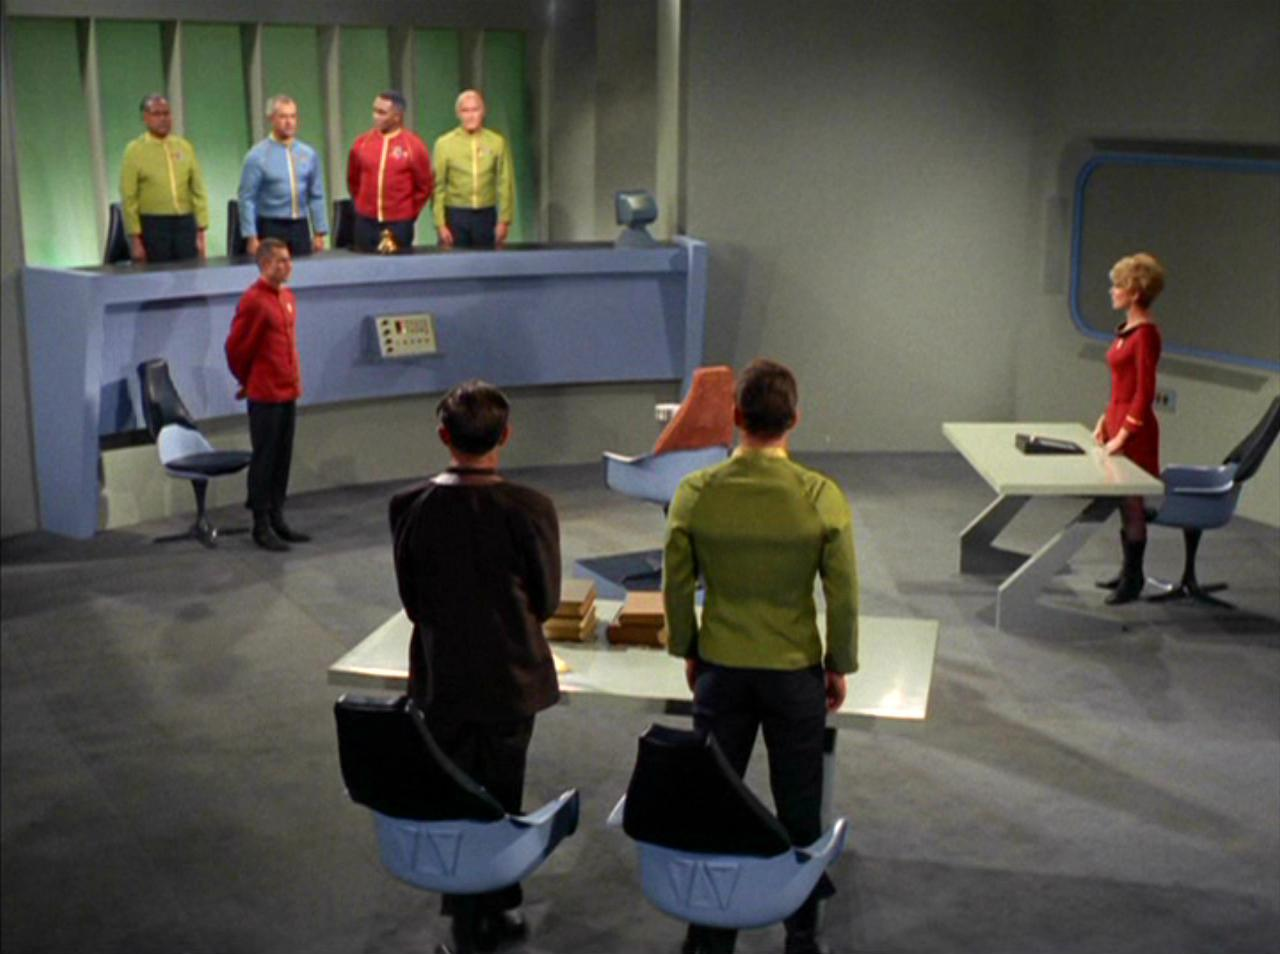 It's the Starbase 11 courtroom from  Star Trek: TOS .